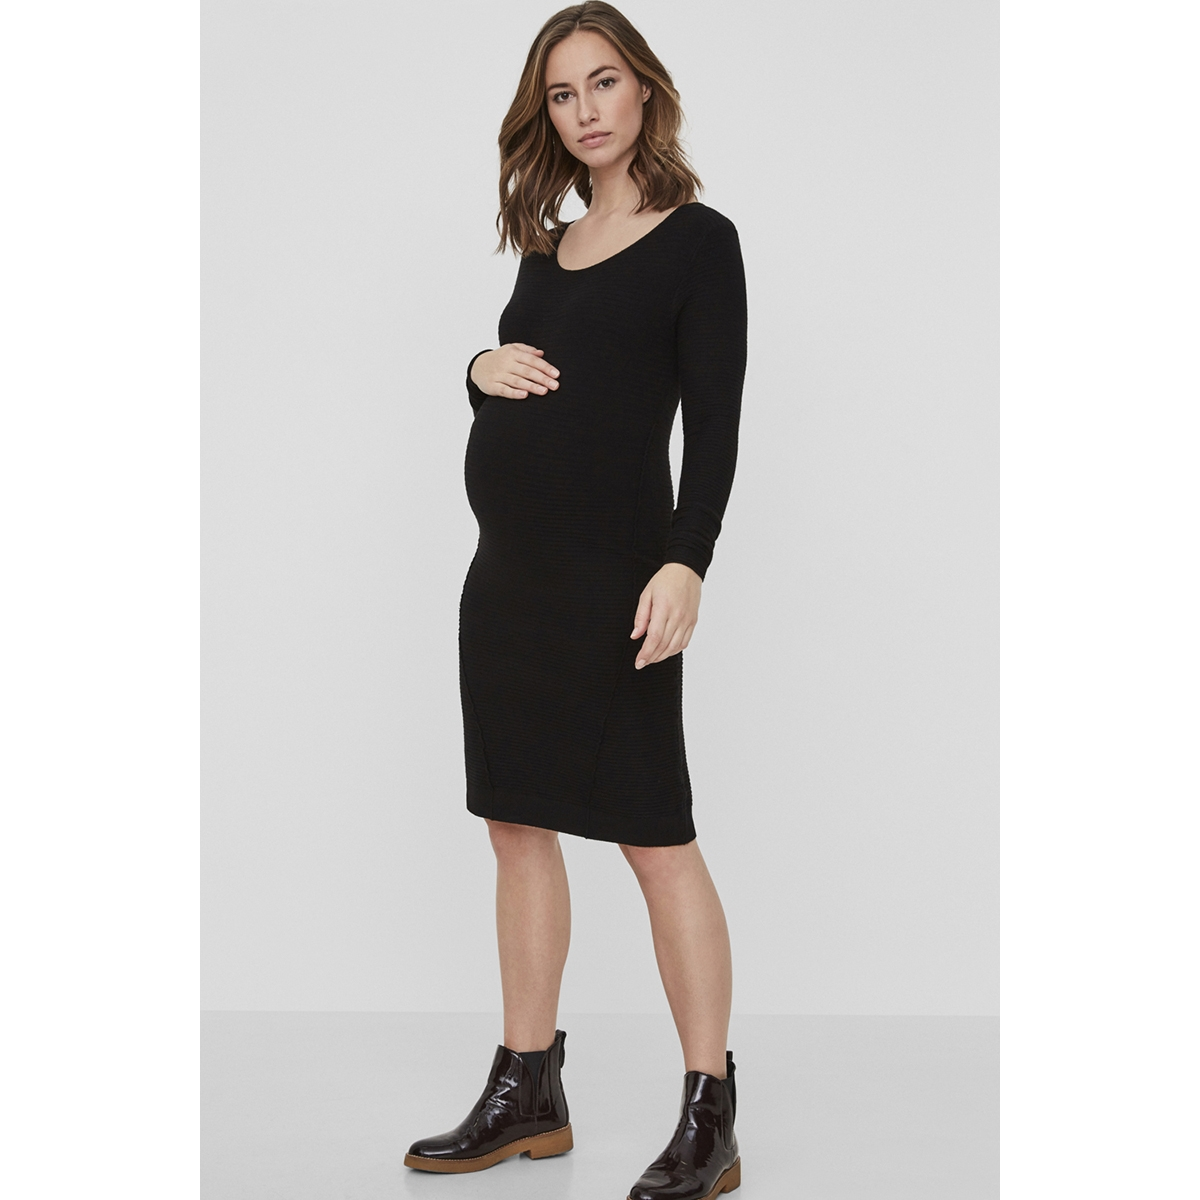 mllola l/s knit short dress 20008002 mama-licious positie jurk black